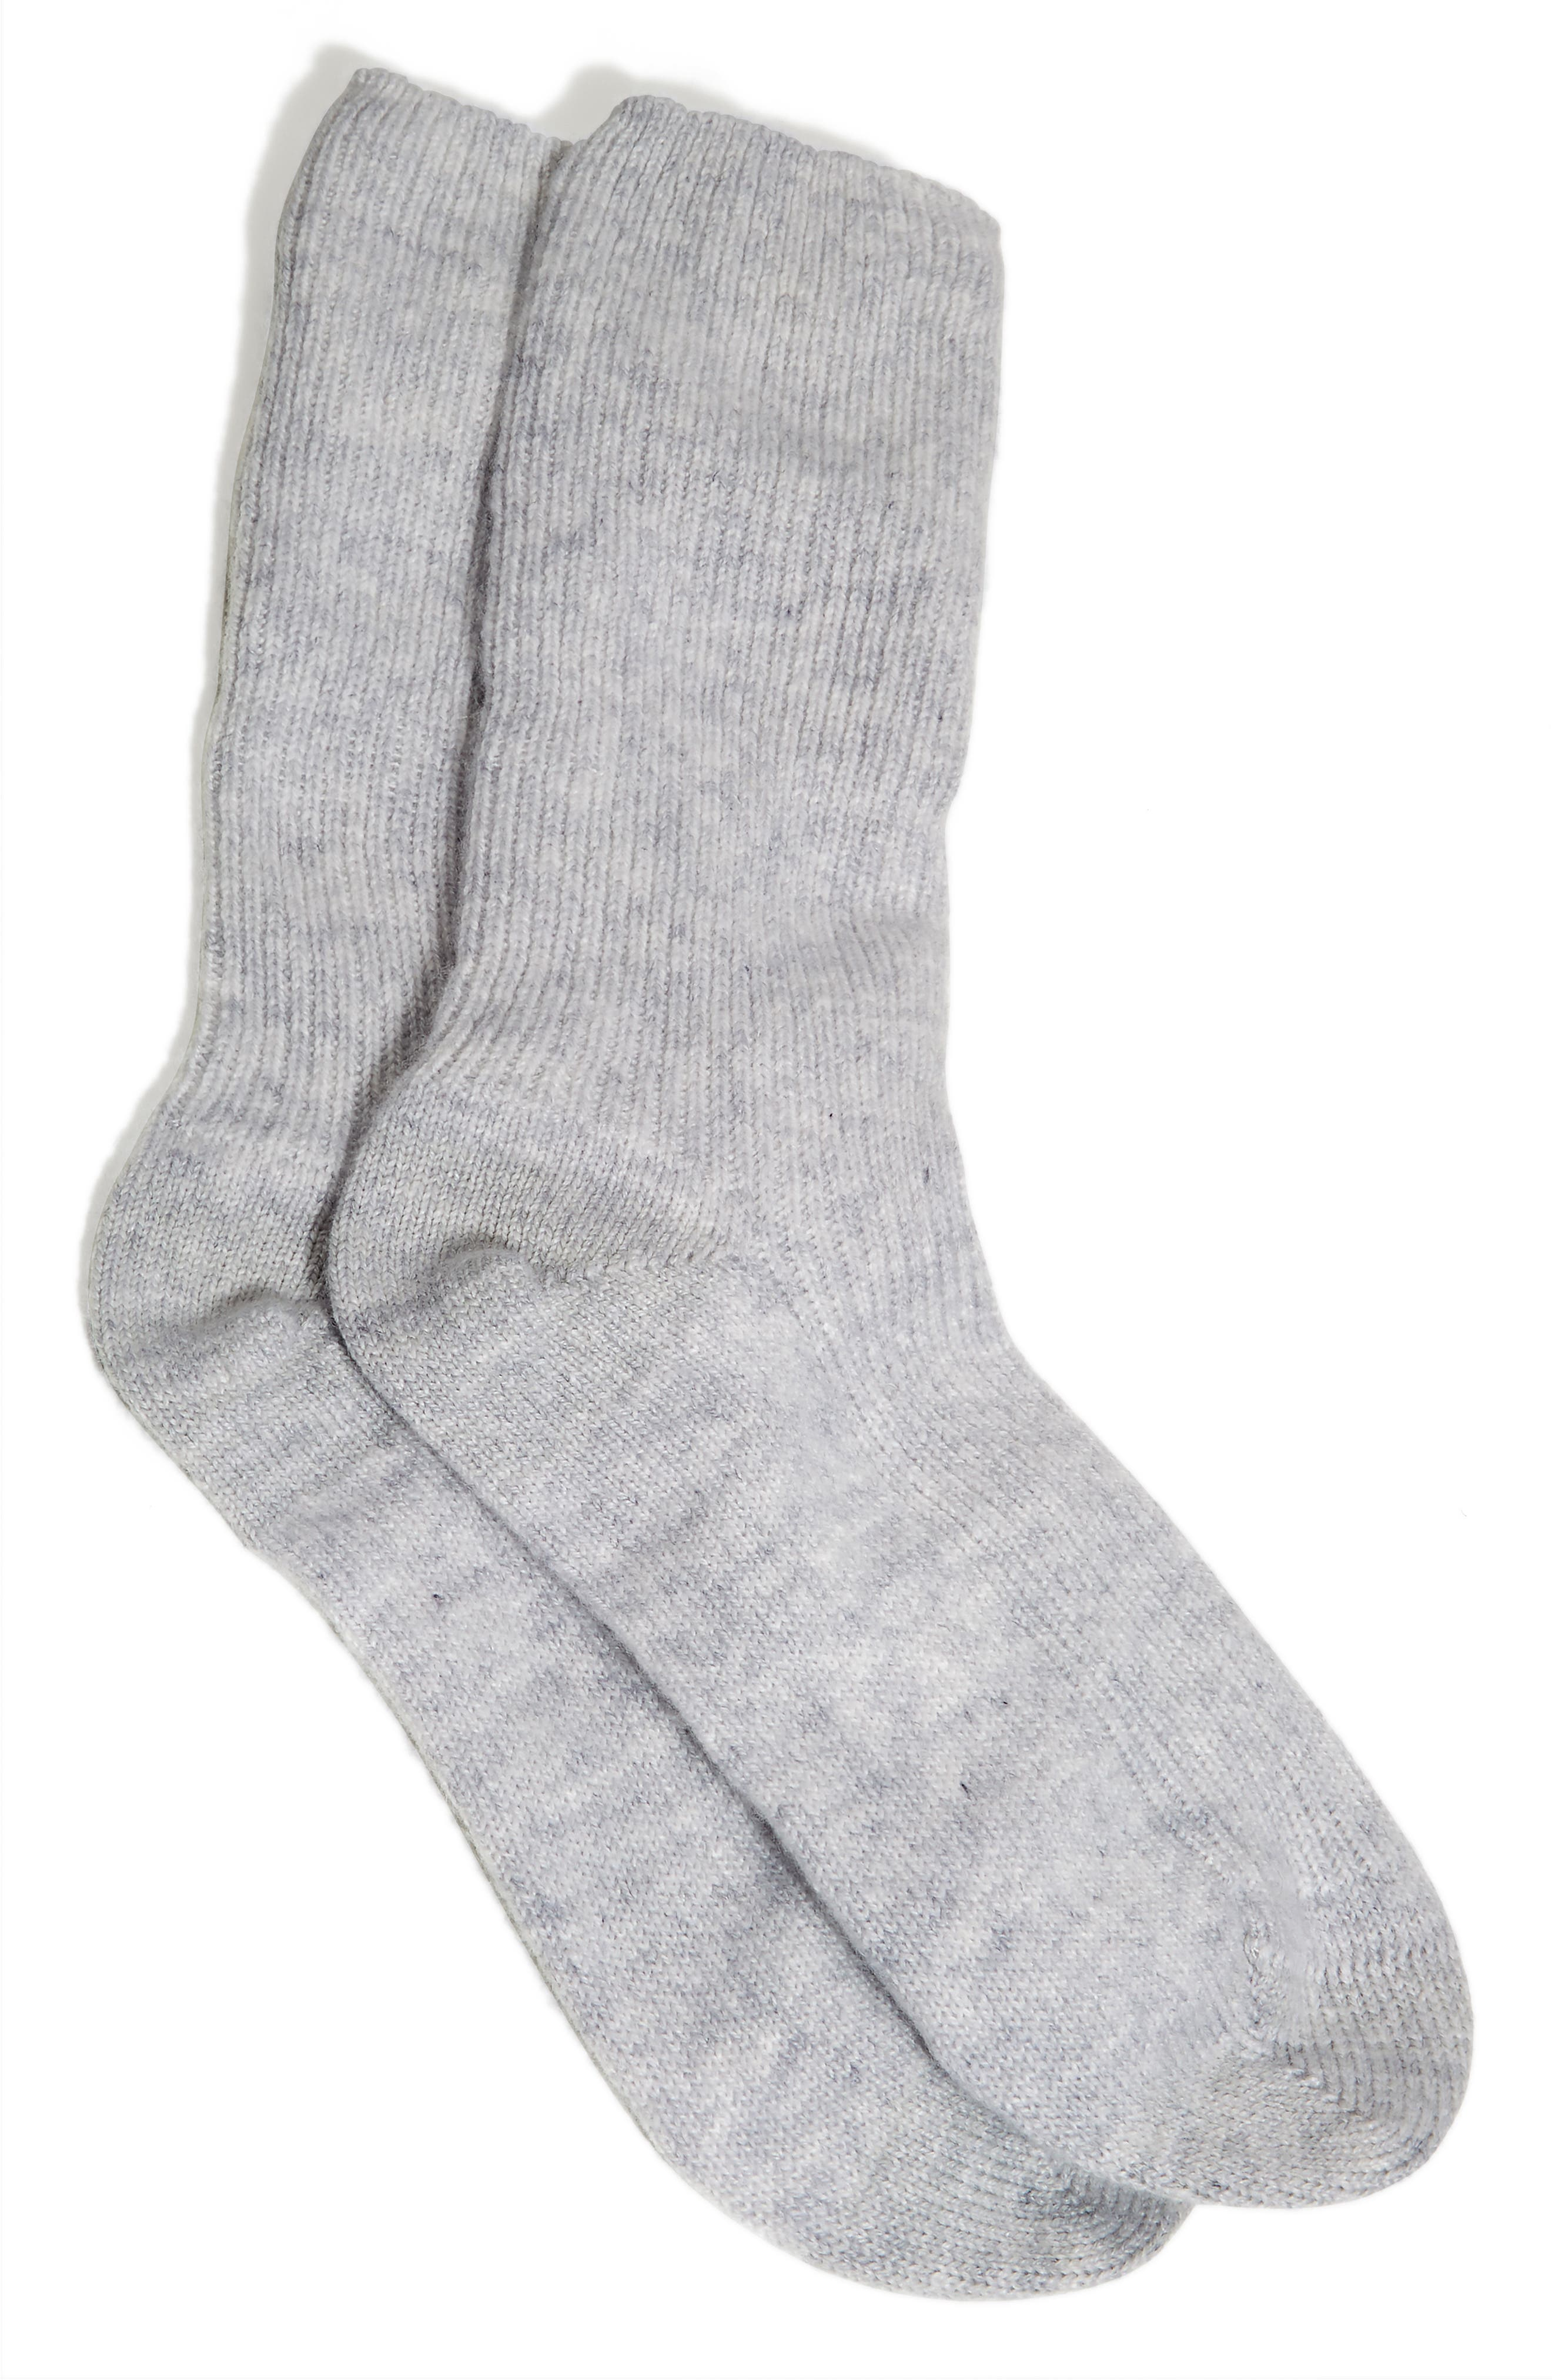 THE WHITE COMPANY, Cashmere Bed Socks, Main thumbnail 1, color, SILVER GREY HEATHER